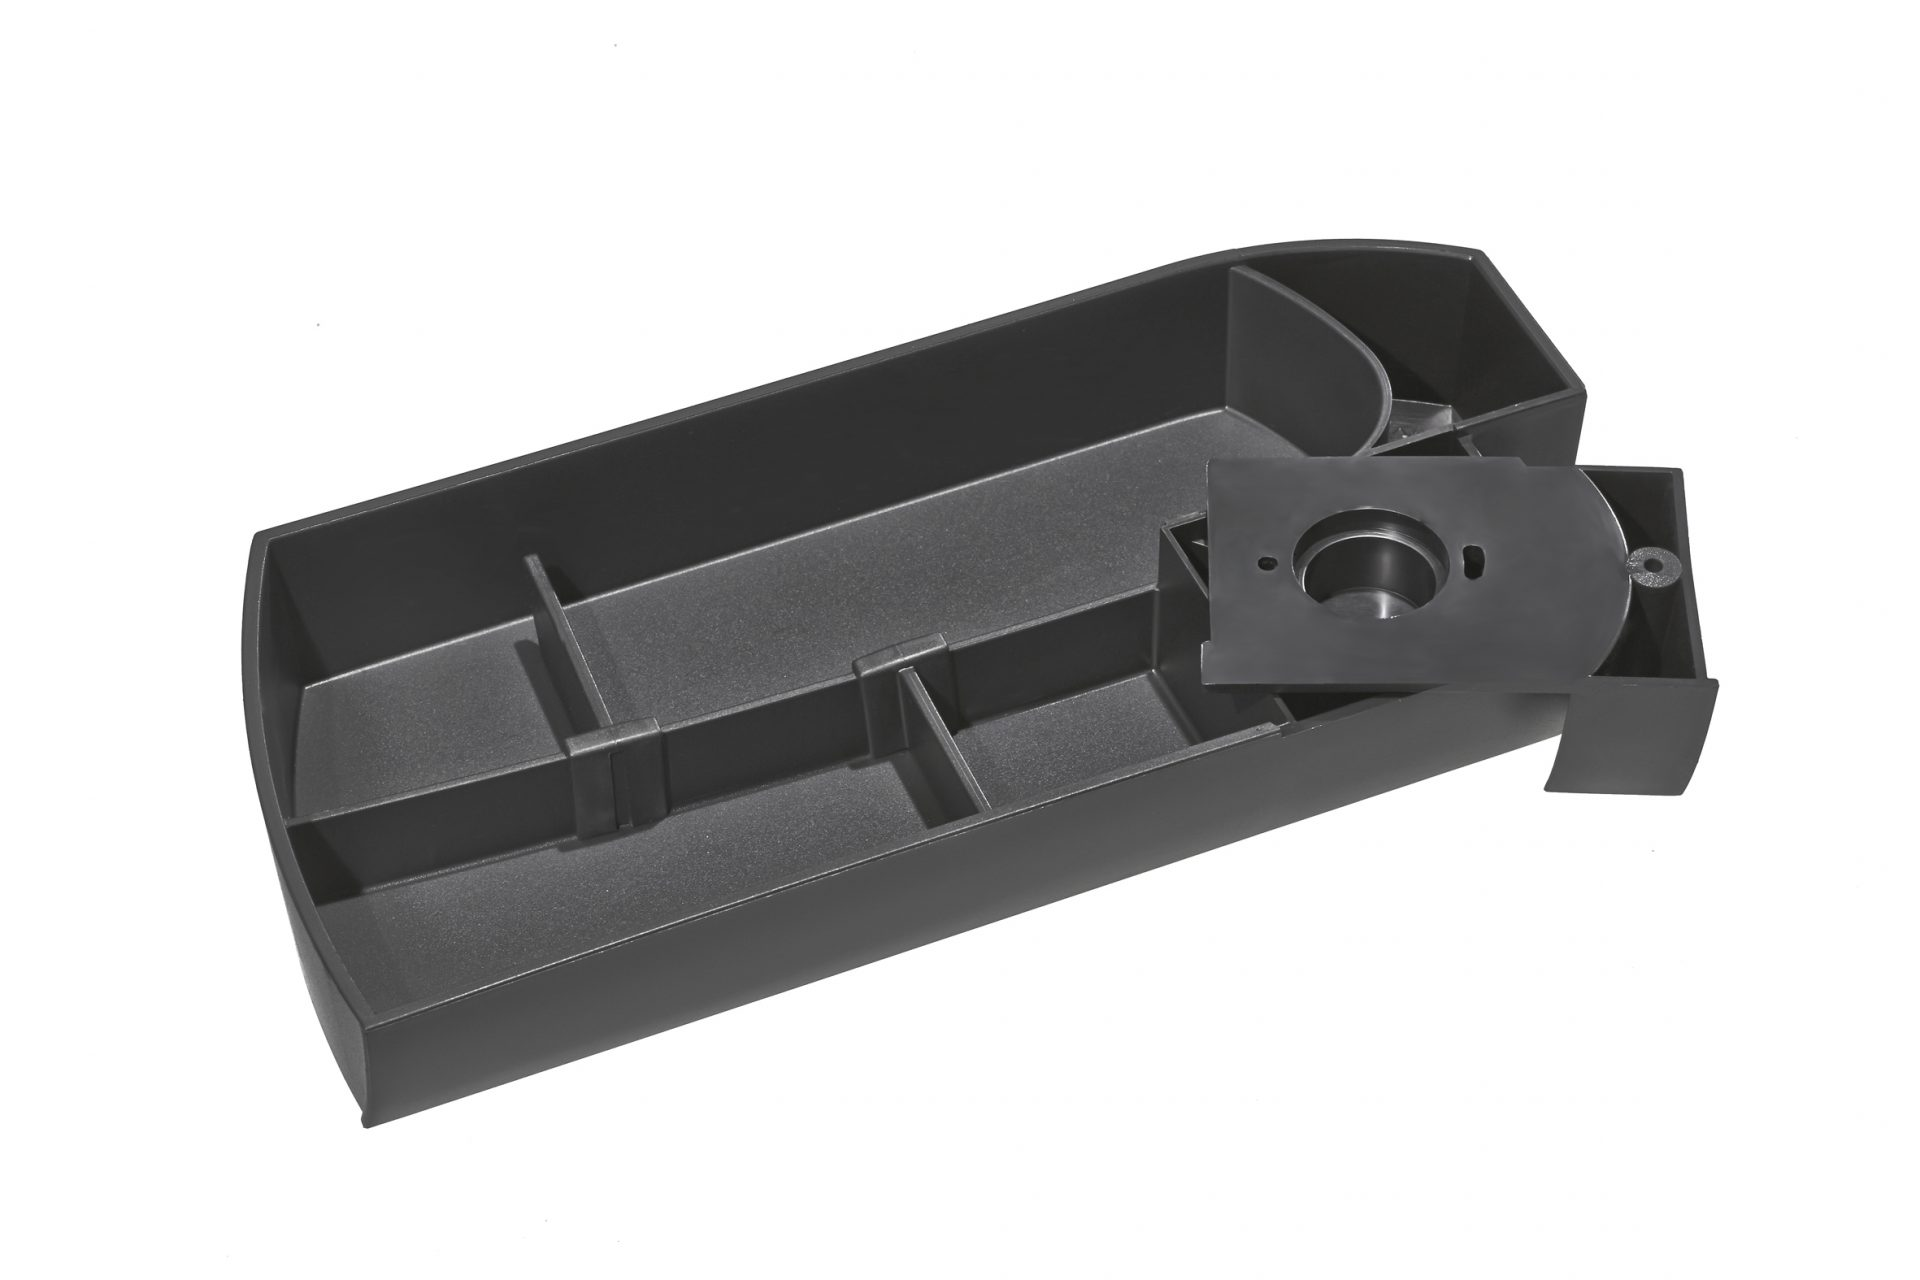 Complement Pen tray_Black (1)